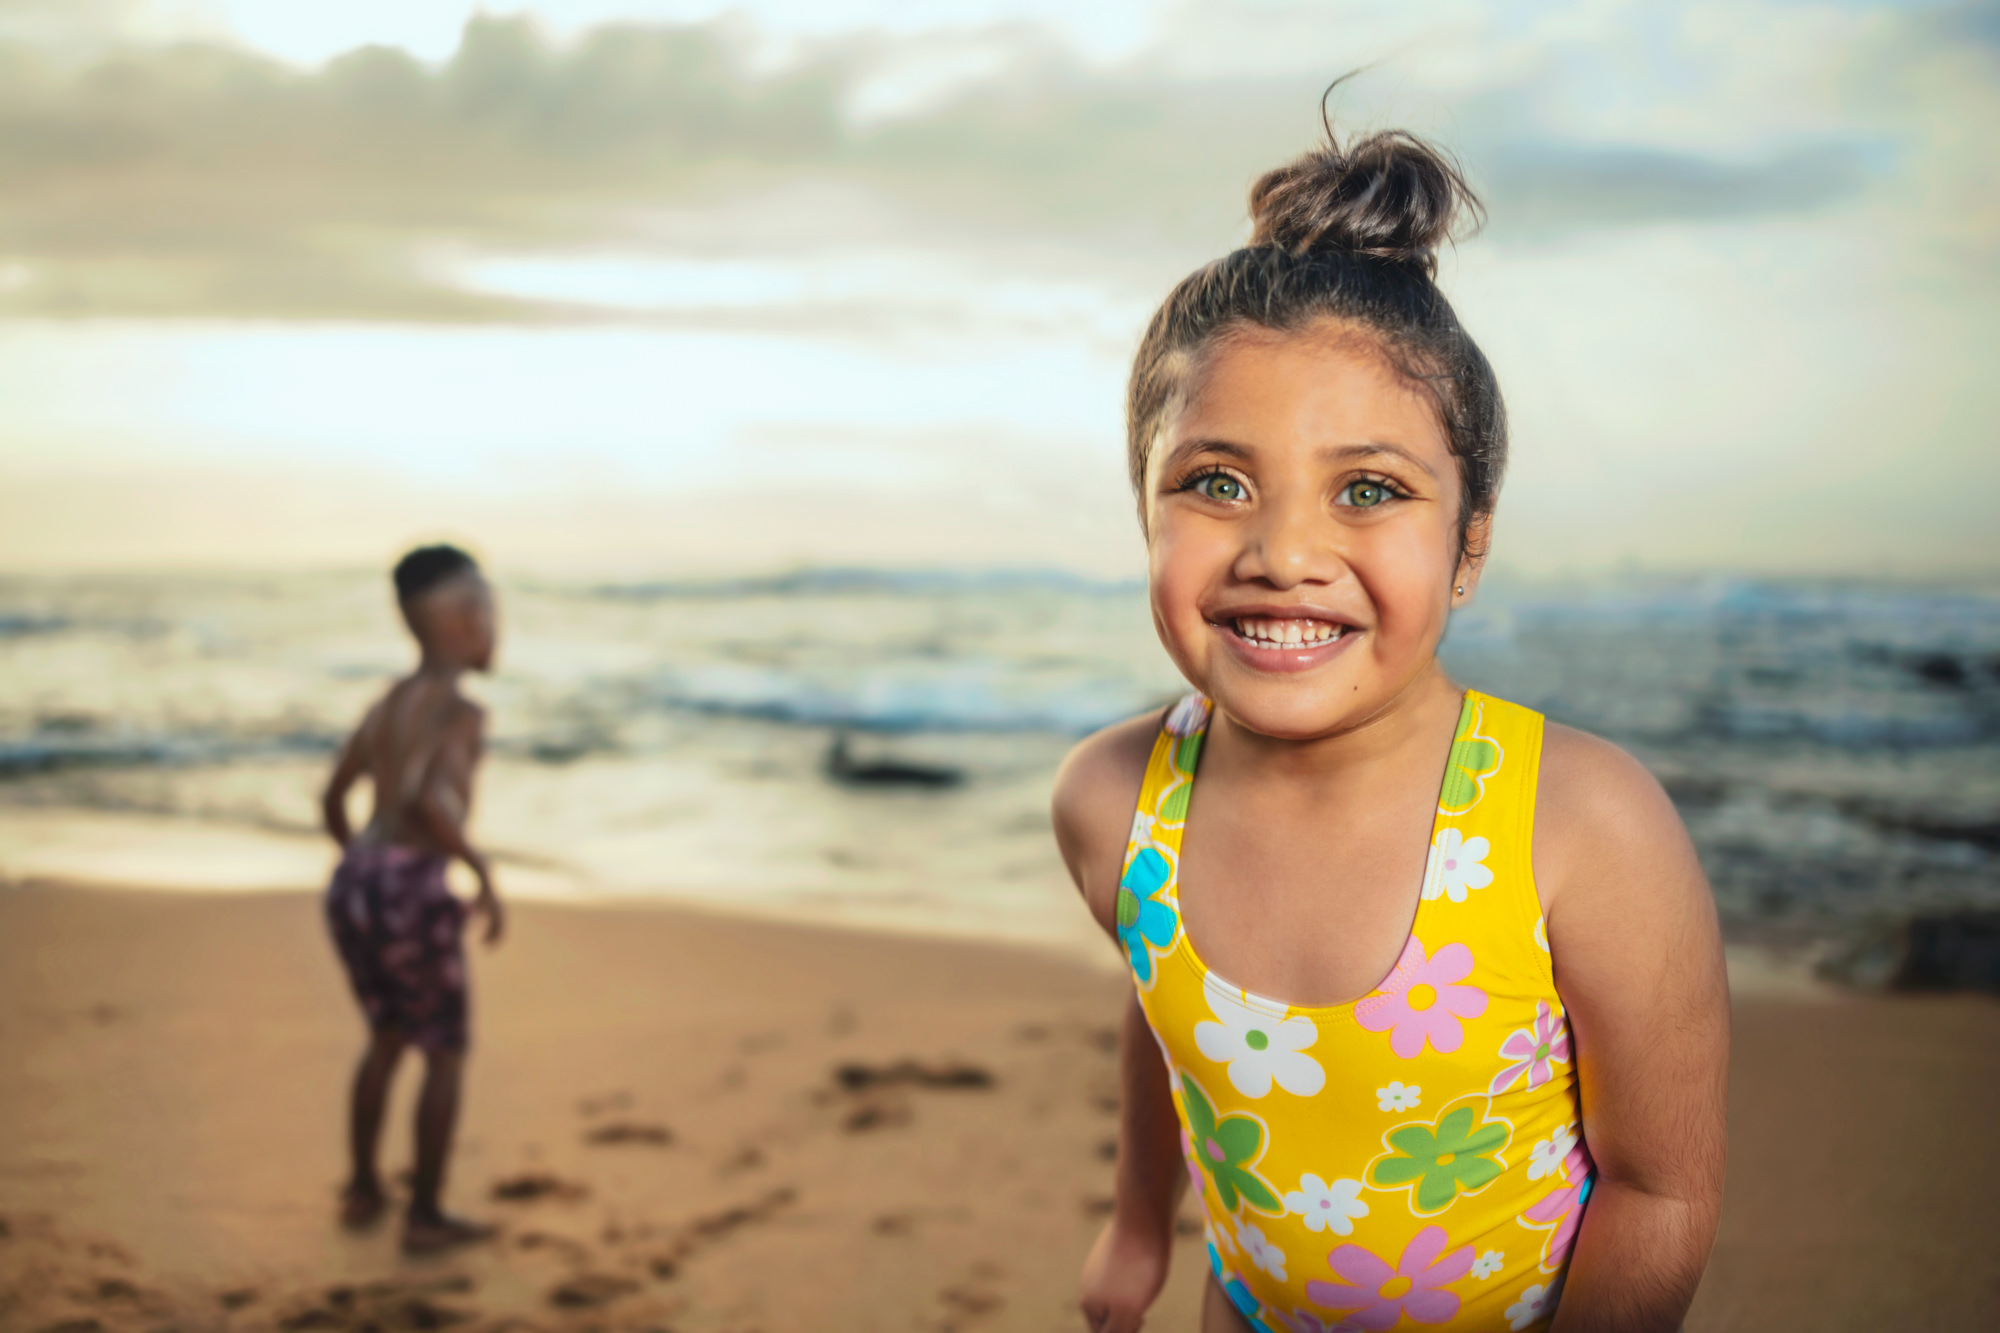 Image of girl on beach at the Beverly Hills Hotel in uMhlanga Rocks, Durban for  Tsogo Sun's Image Library & Content Library by Michelle Wastie Photography